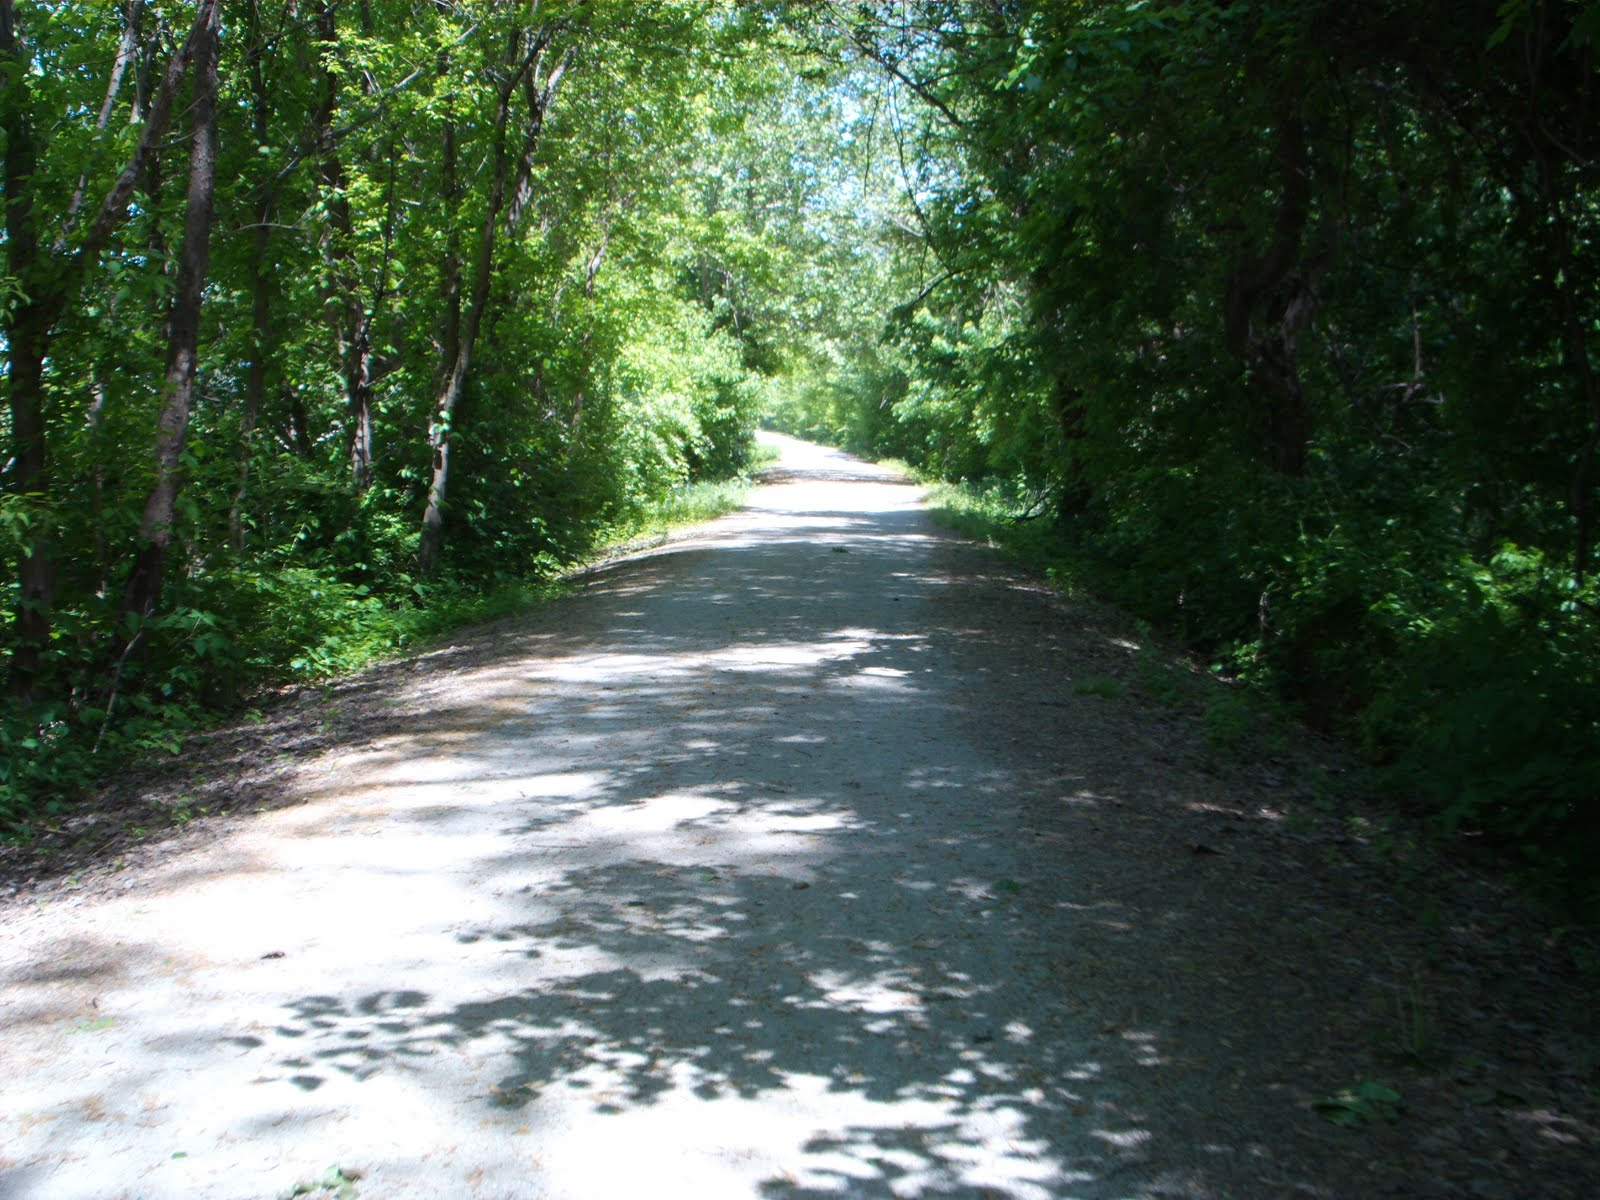 The ABC3s of Miscellany: A Katy Trail Weekend Katy Trail